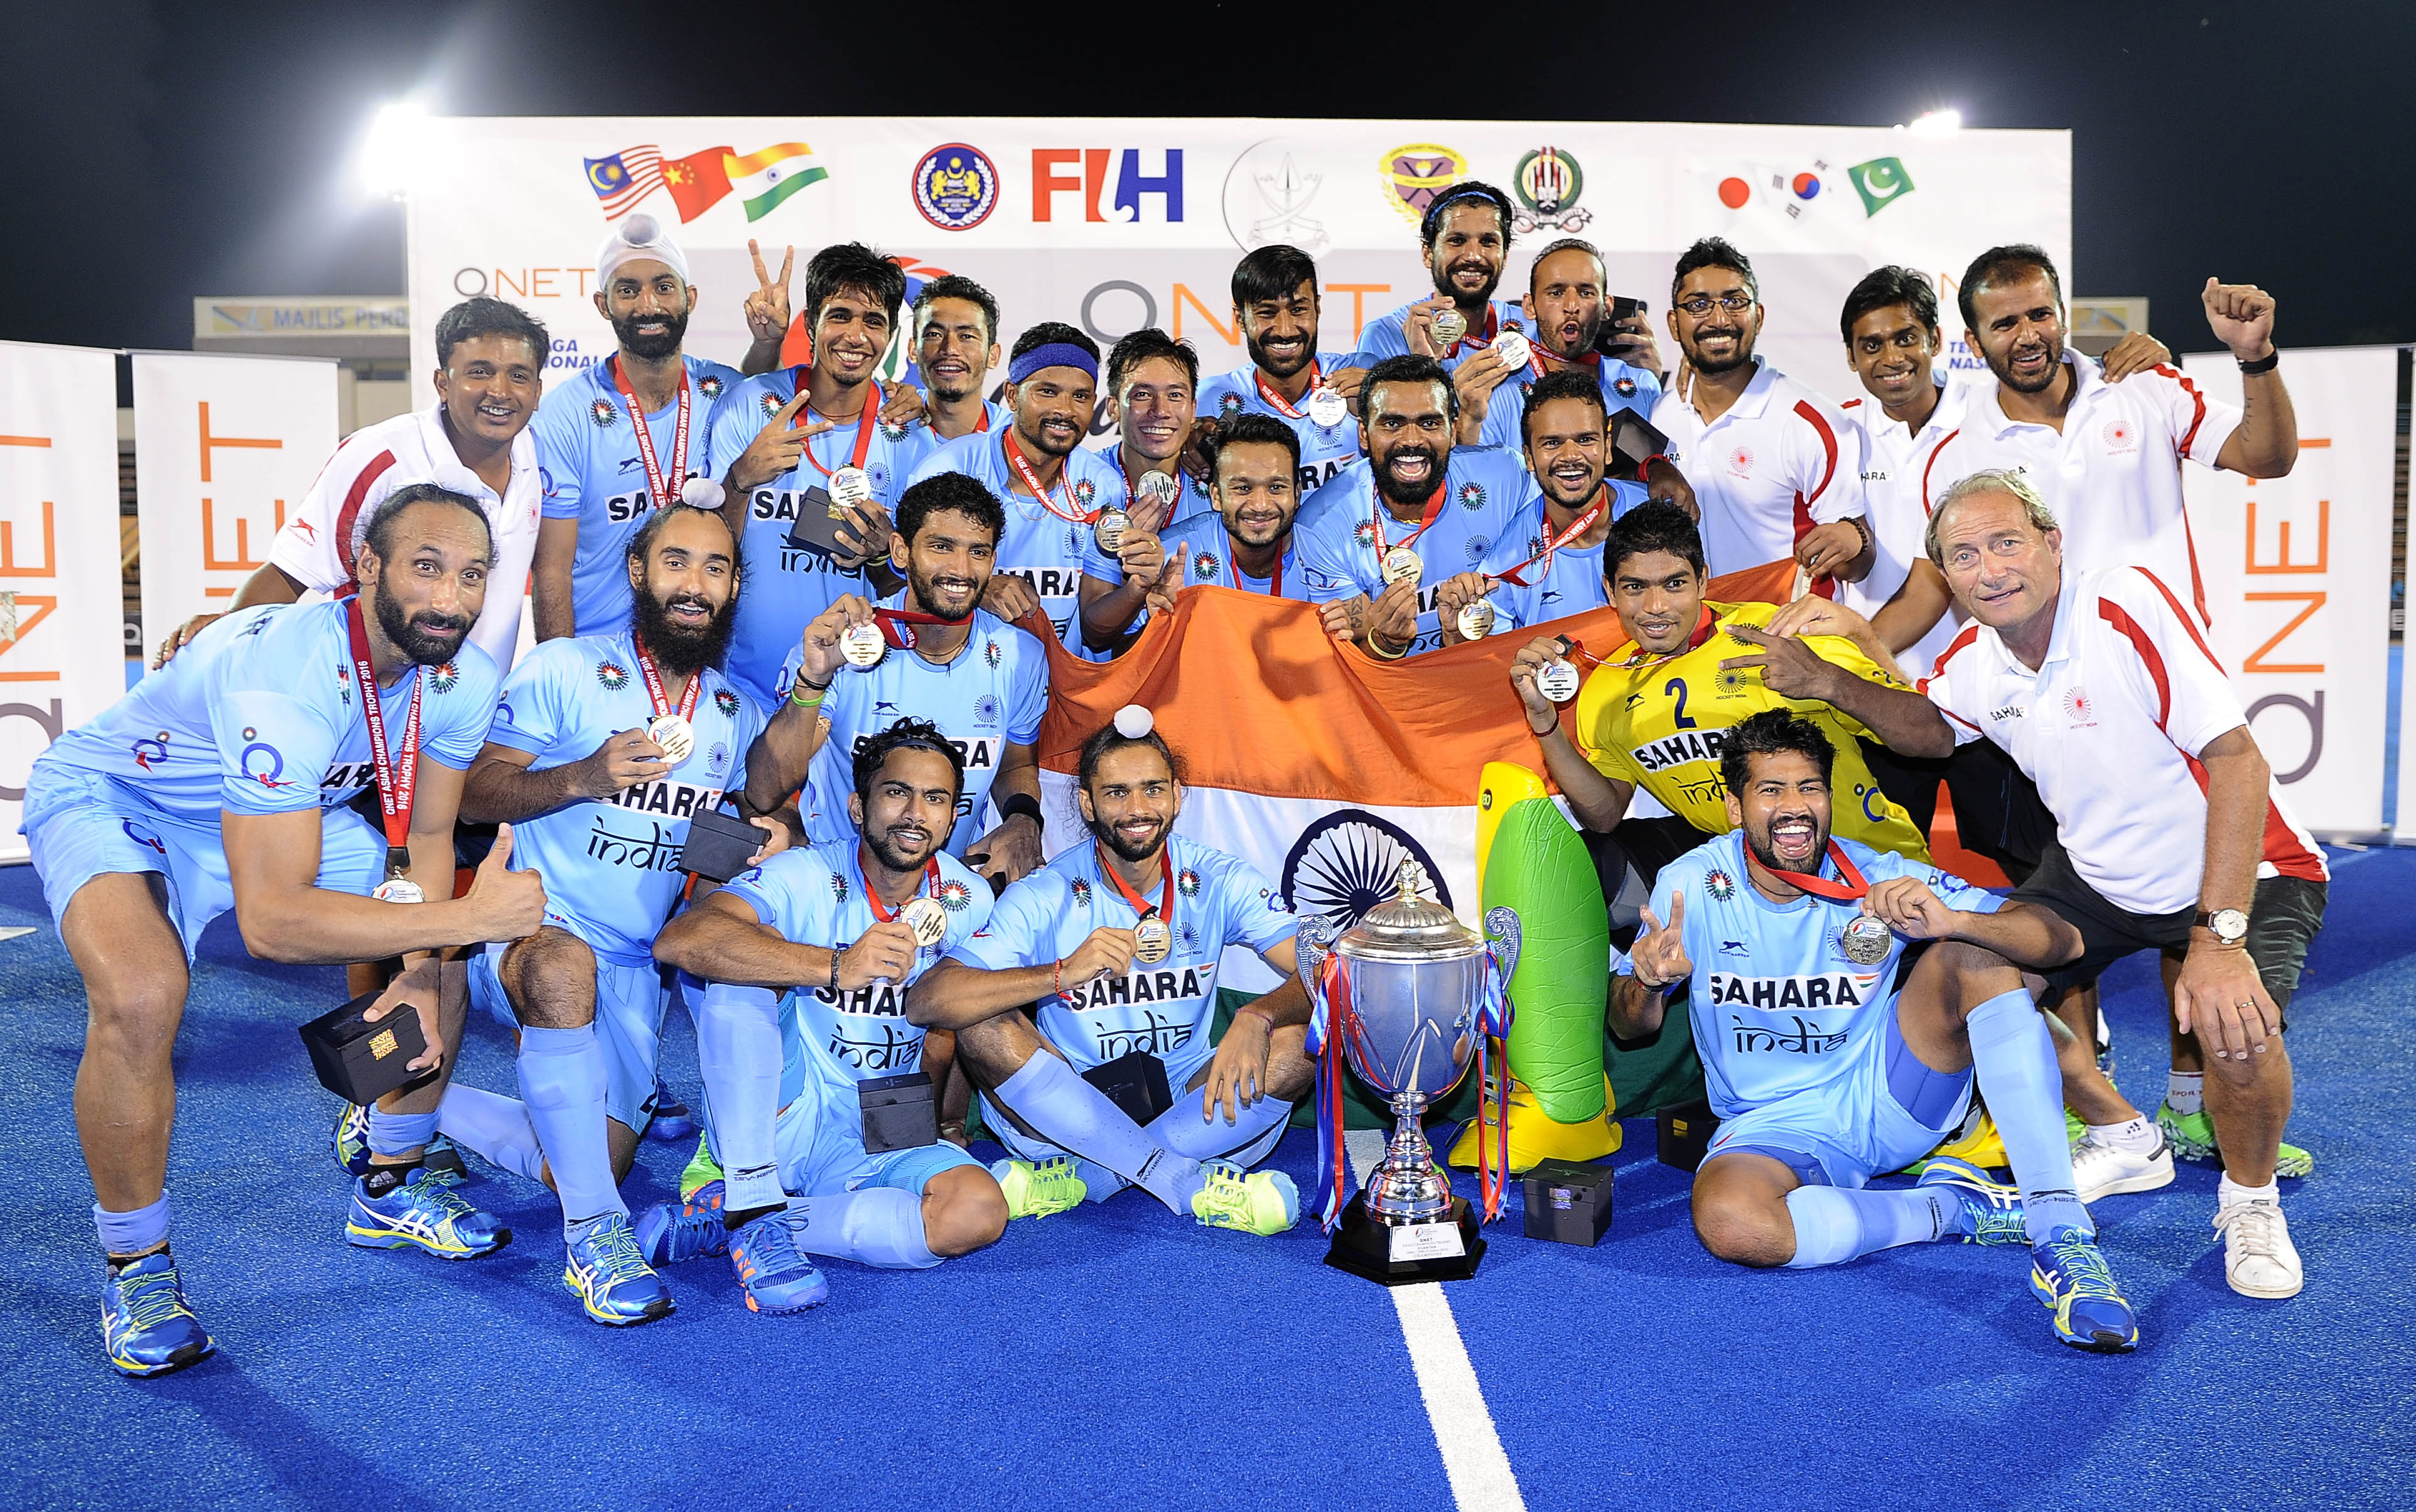 The Indian team celebrate after emerging as champions of the QNET Asian Champions Trophy 2016.